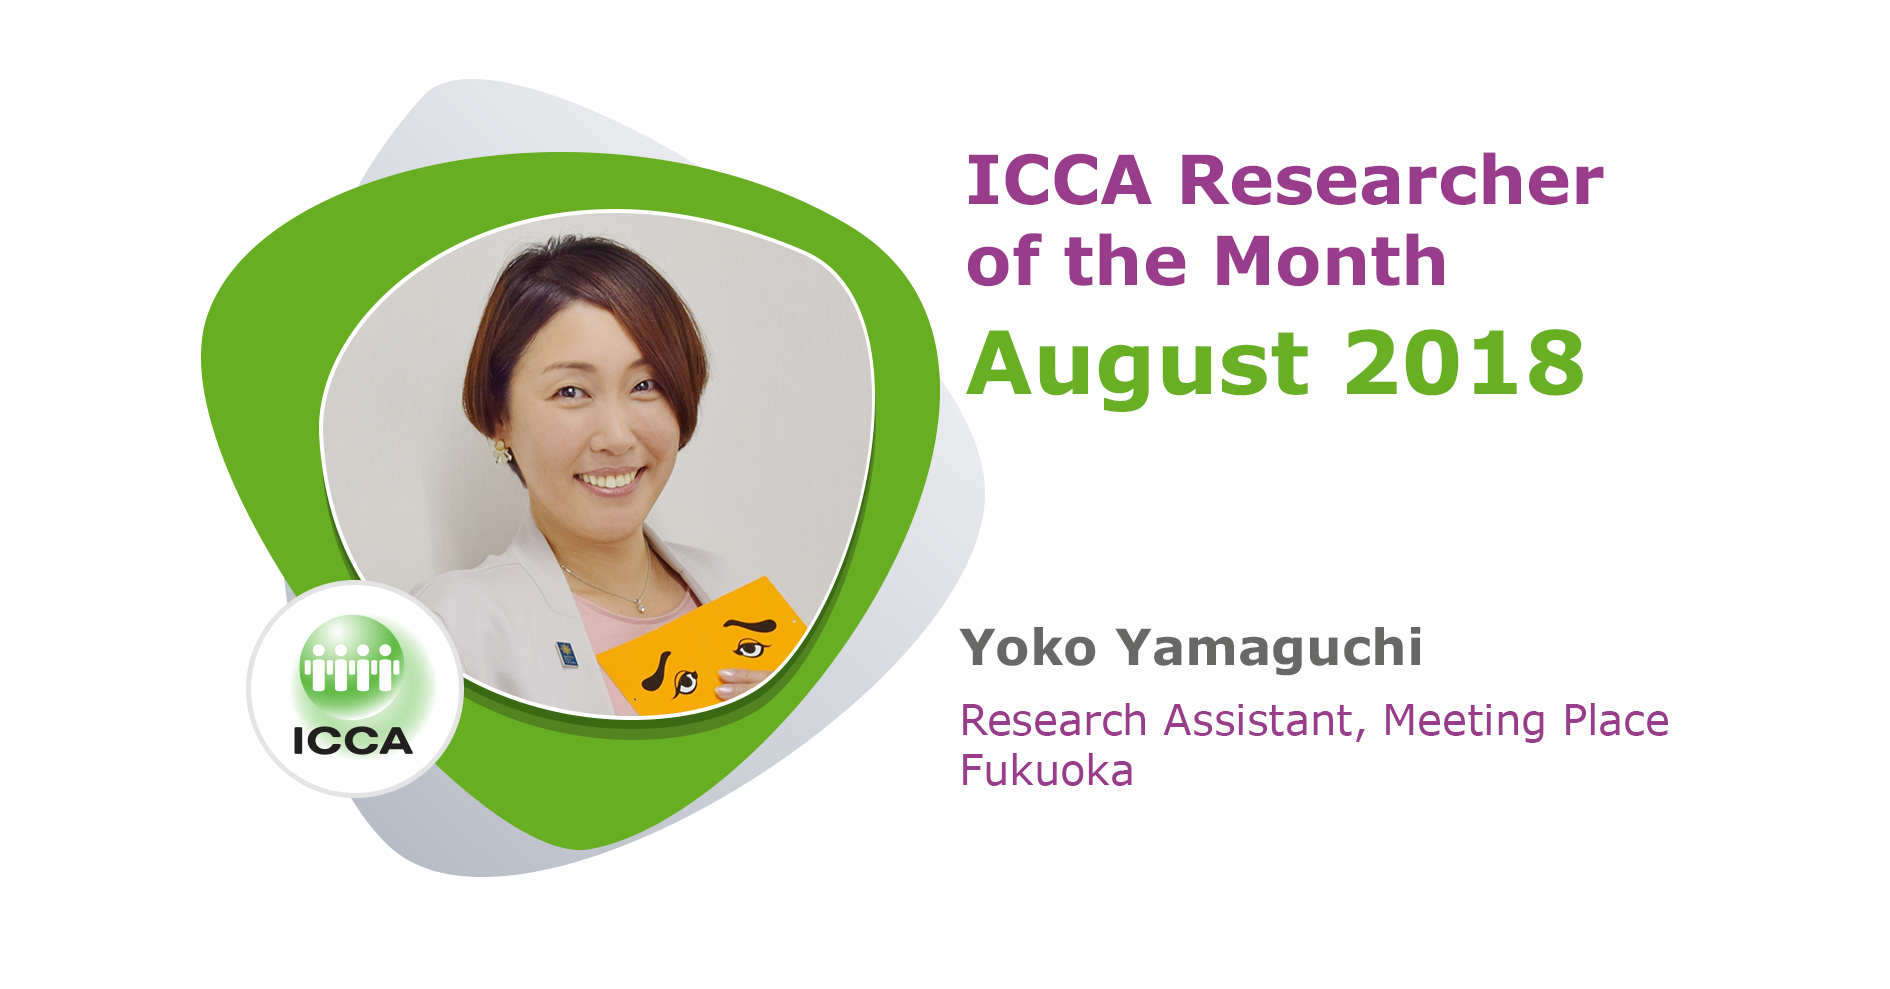 For August 2018, Yoko Yamaguchi, Research Assistant at Meeting Place Fukuoka has secured the coveted title of ICCA Researcher of the Month! Congratulations, Yoko.